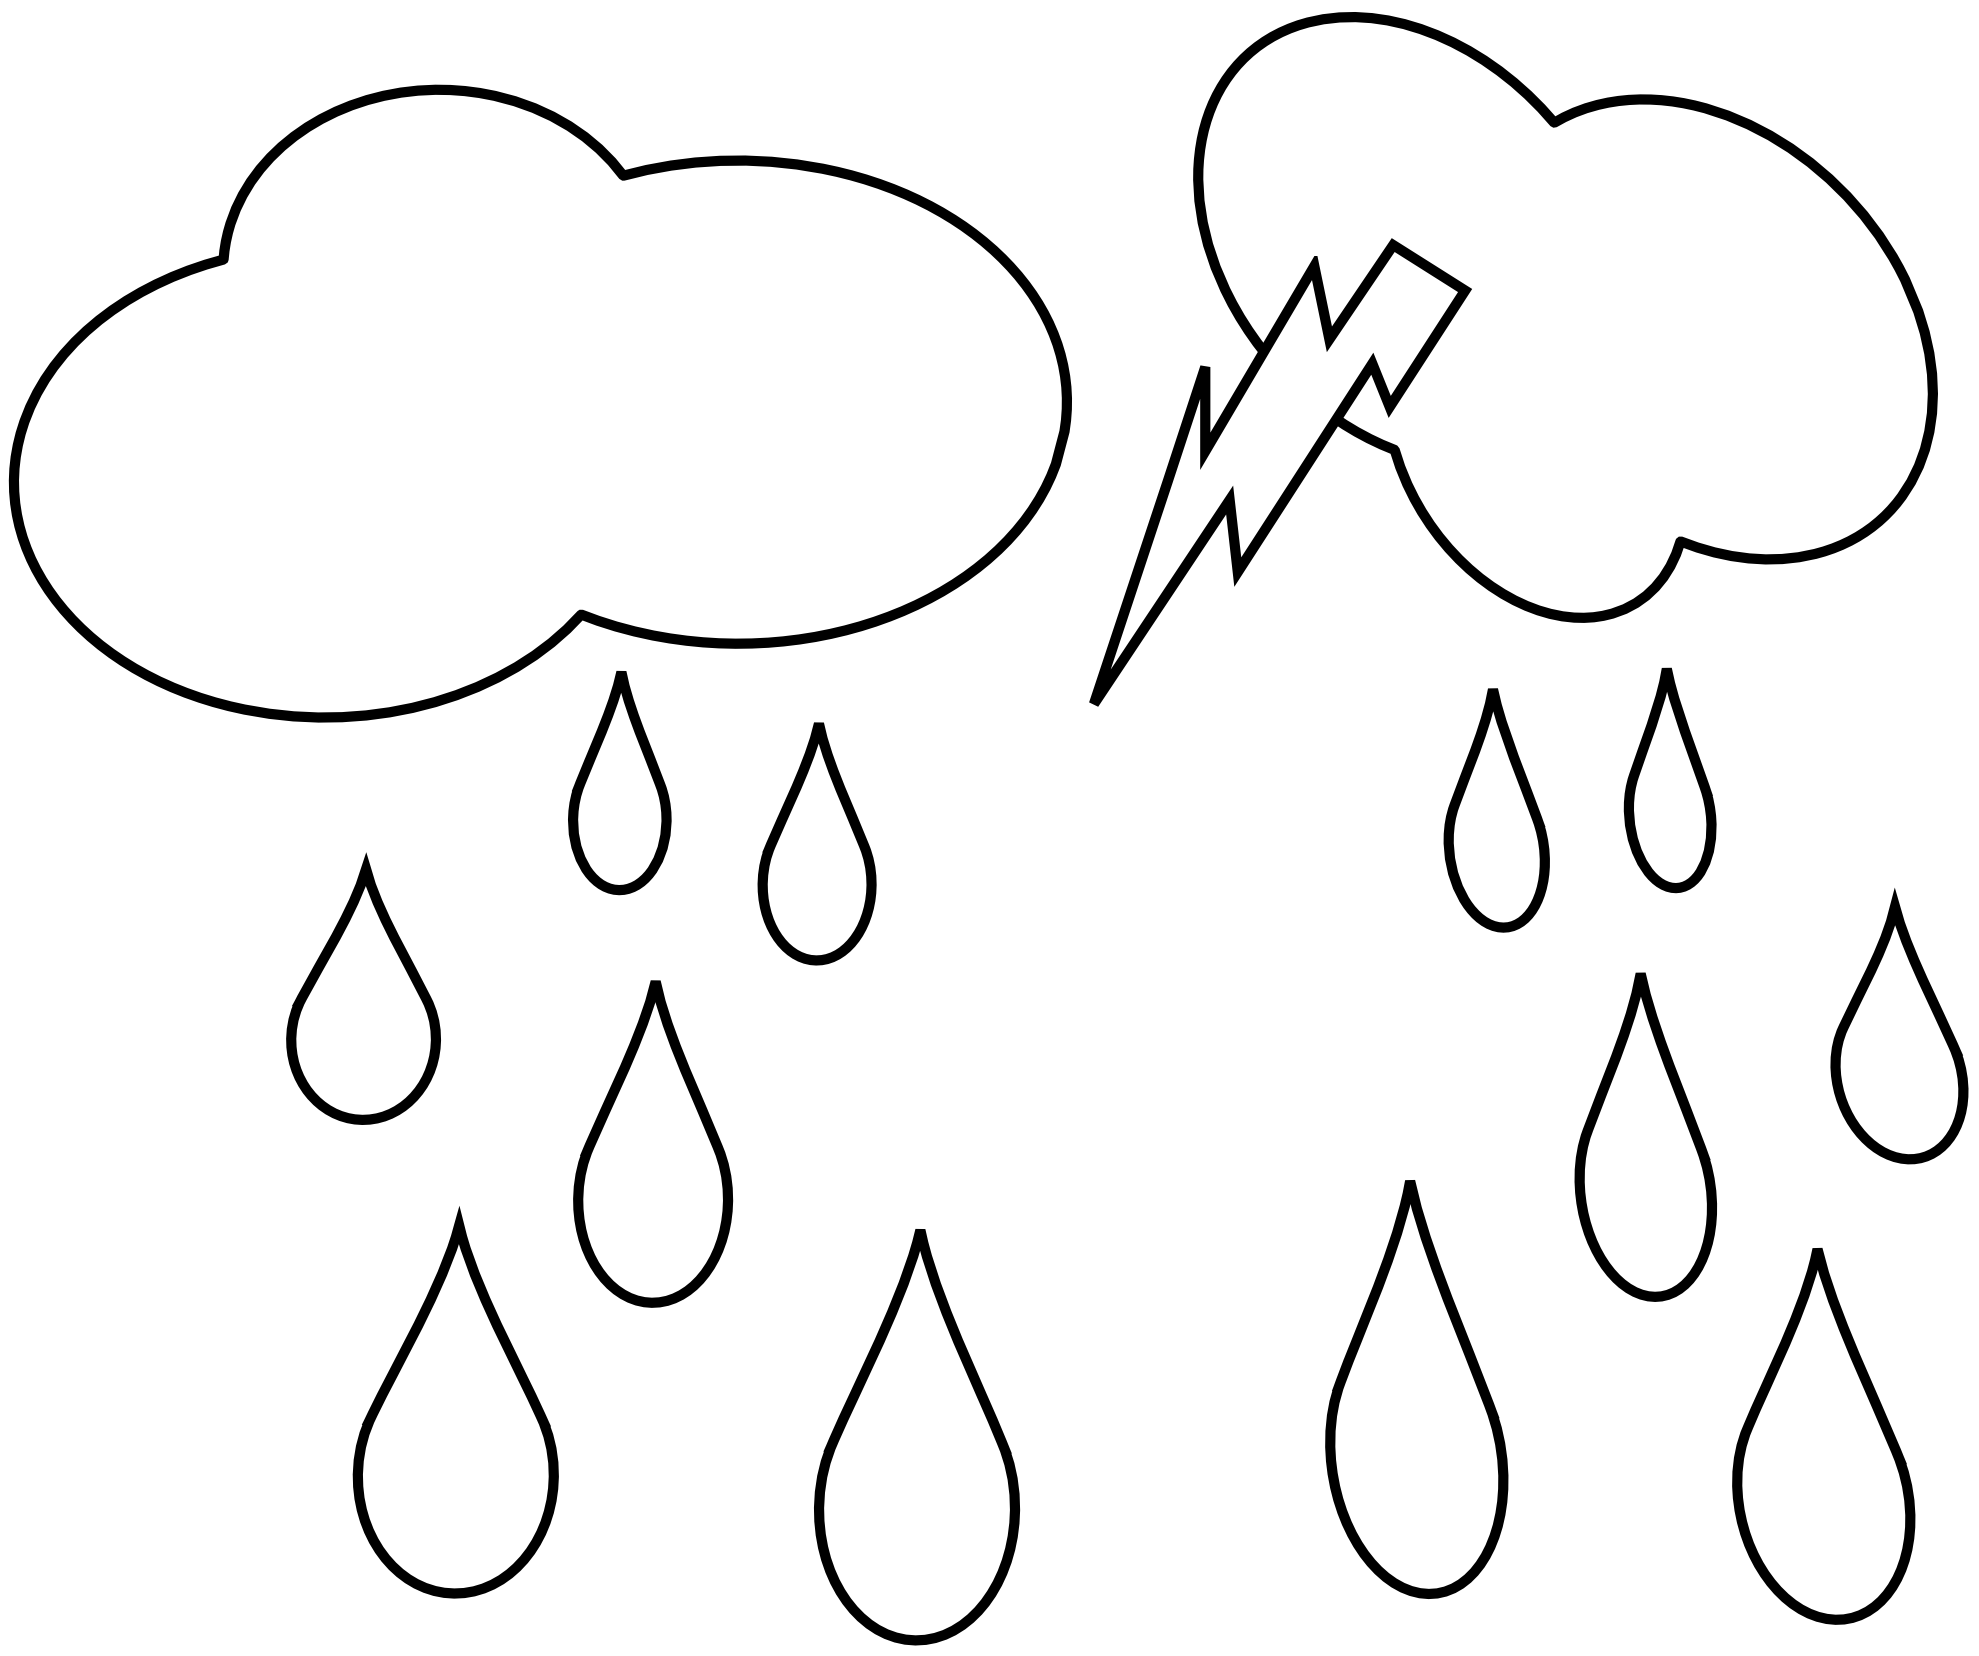 Rain Drops Clip Art Black And White - ClipArt Best